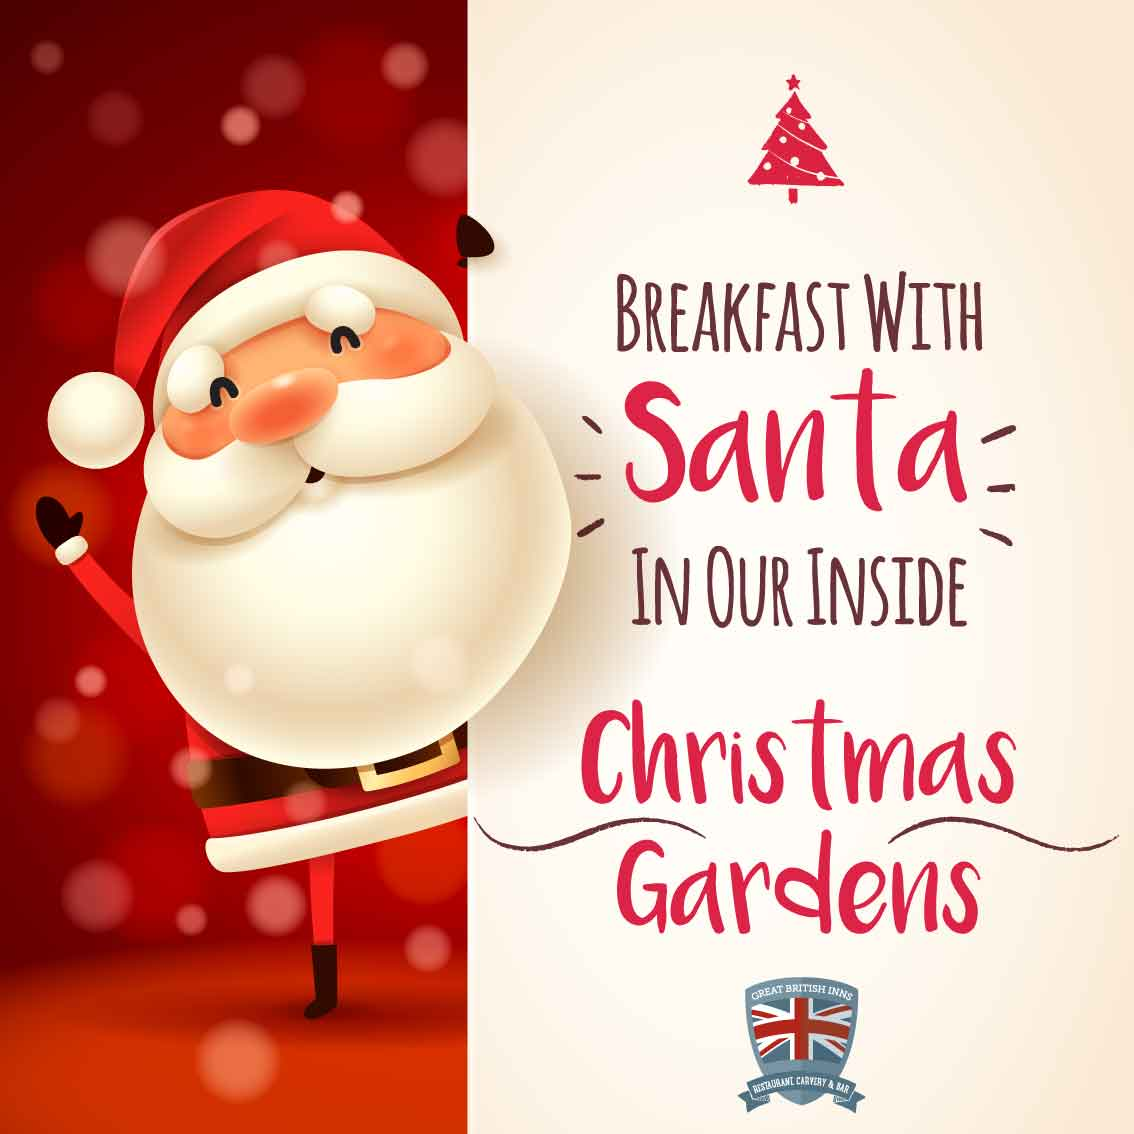 Breakfast with Santa @ The Three Trees, we will update the website with more inforamtion once all details have been confirmed.